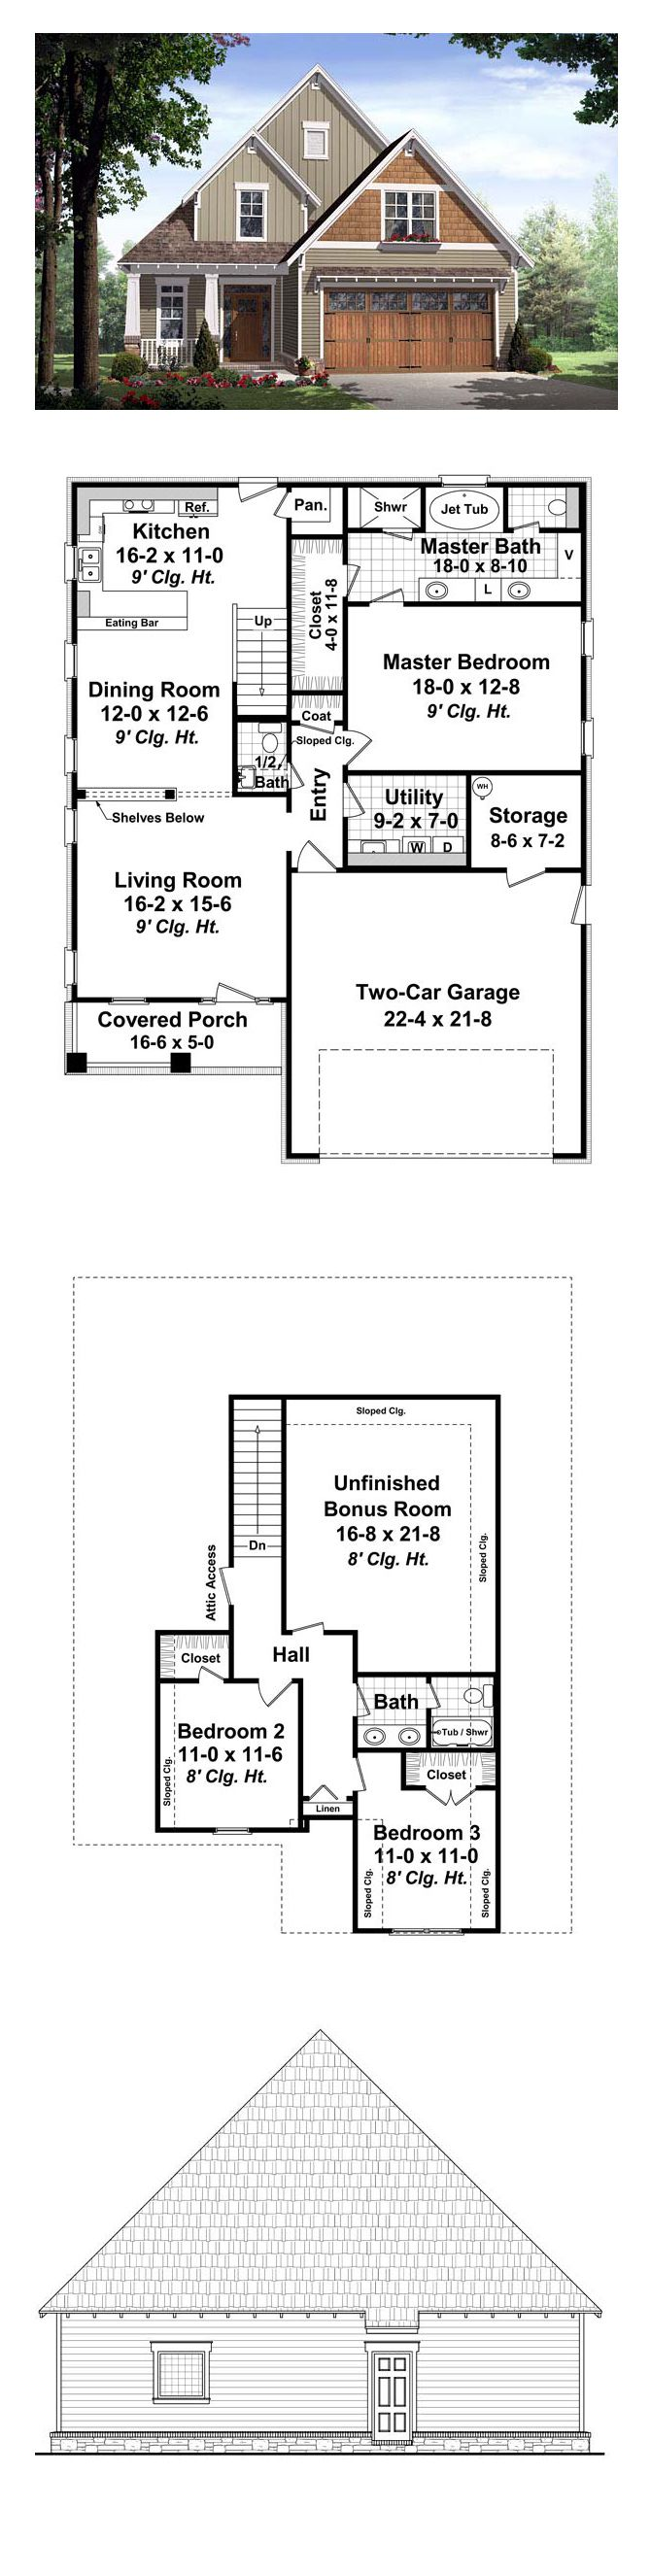 17 best images about bungalow house plans on pinterest for House plans with great room in front